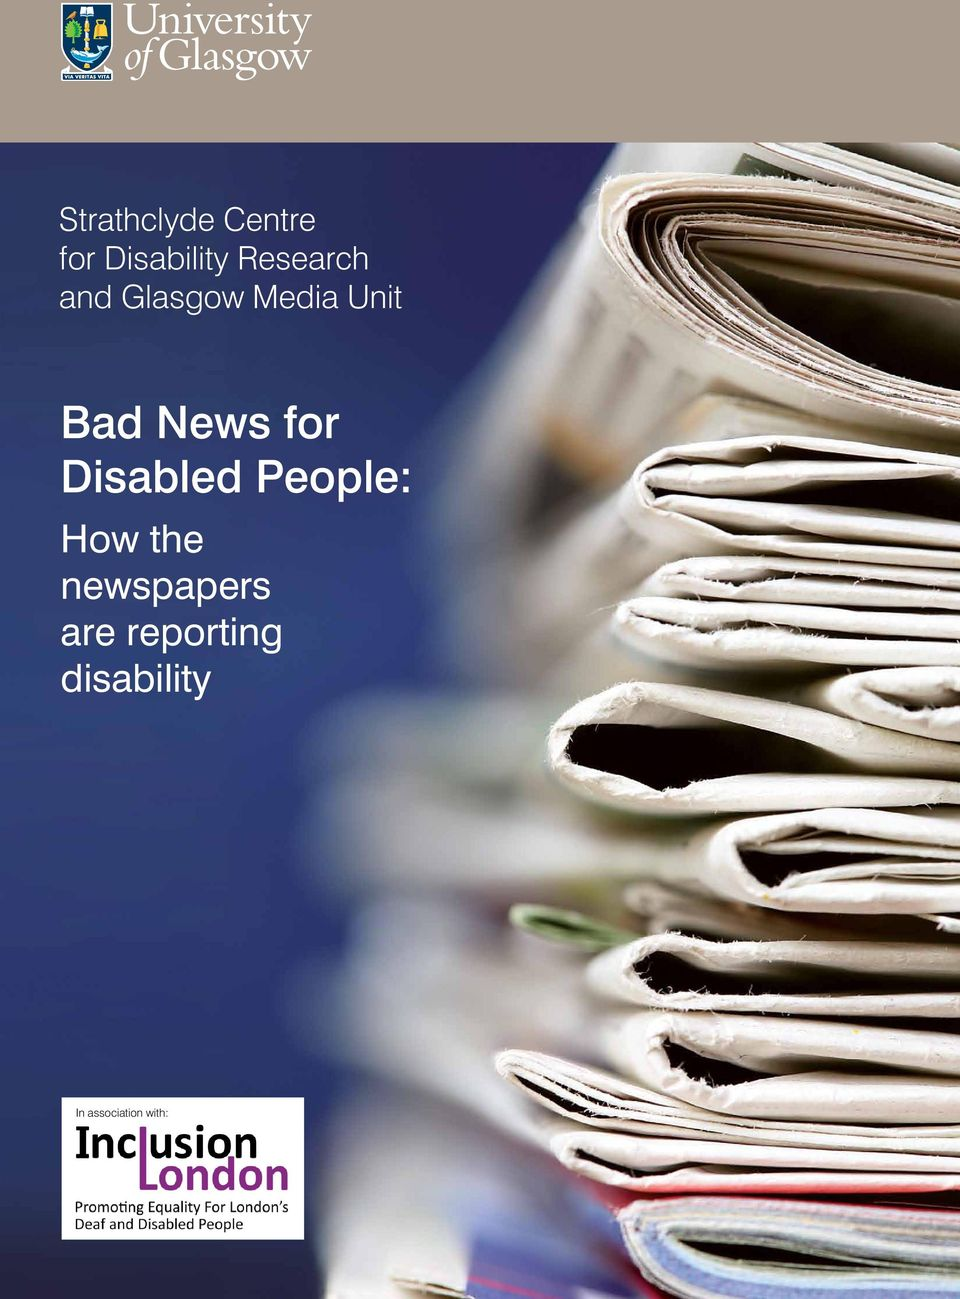 News for Disabled People: How the